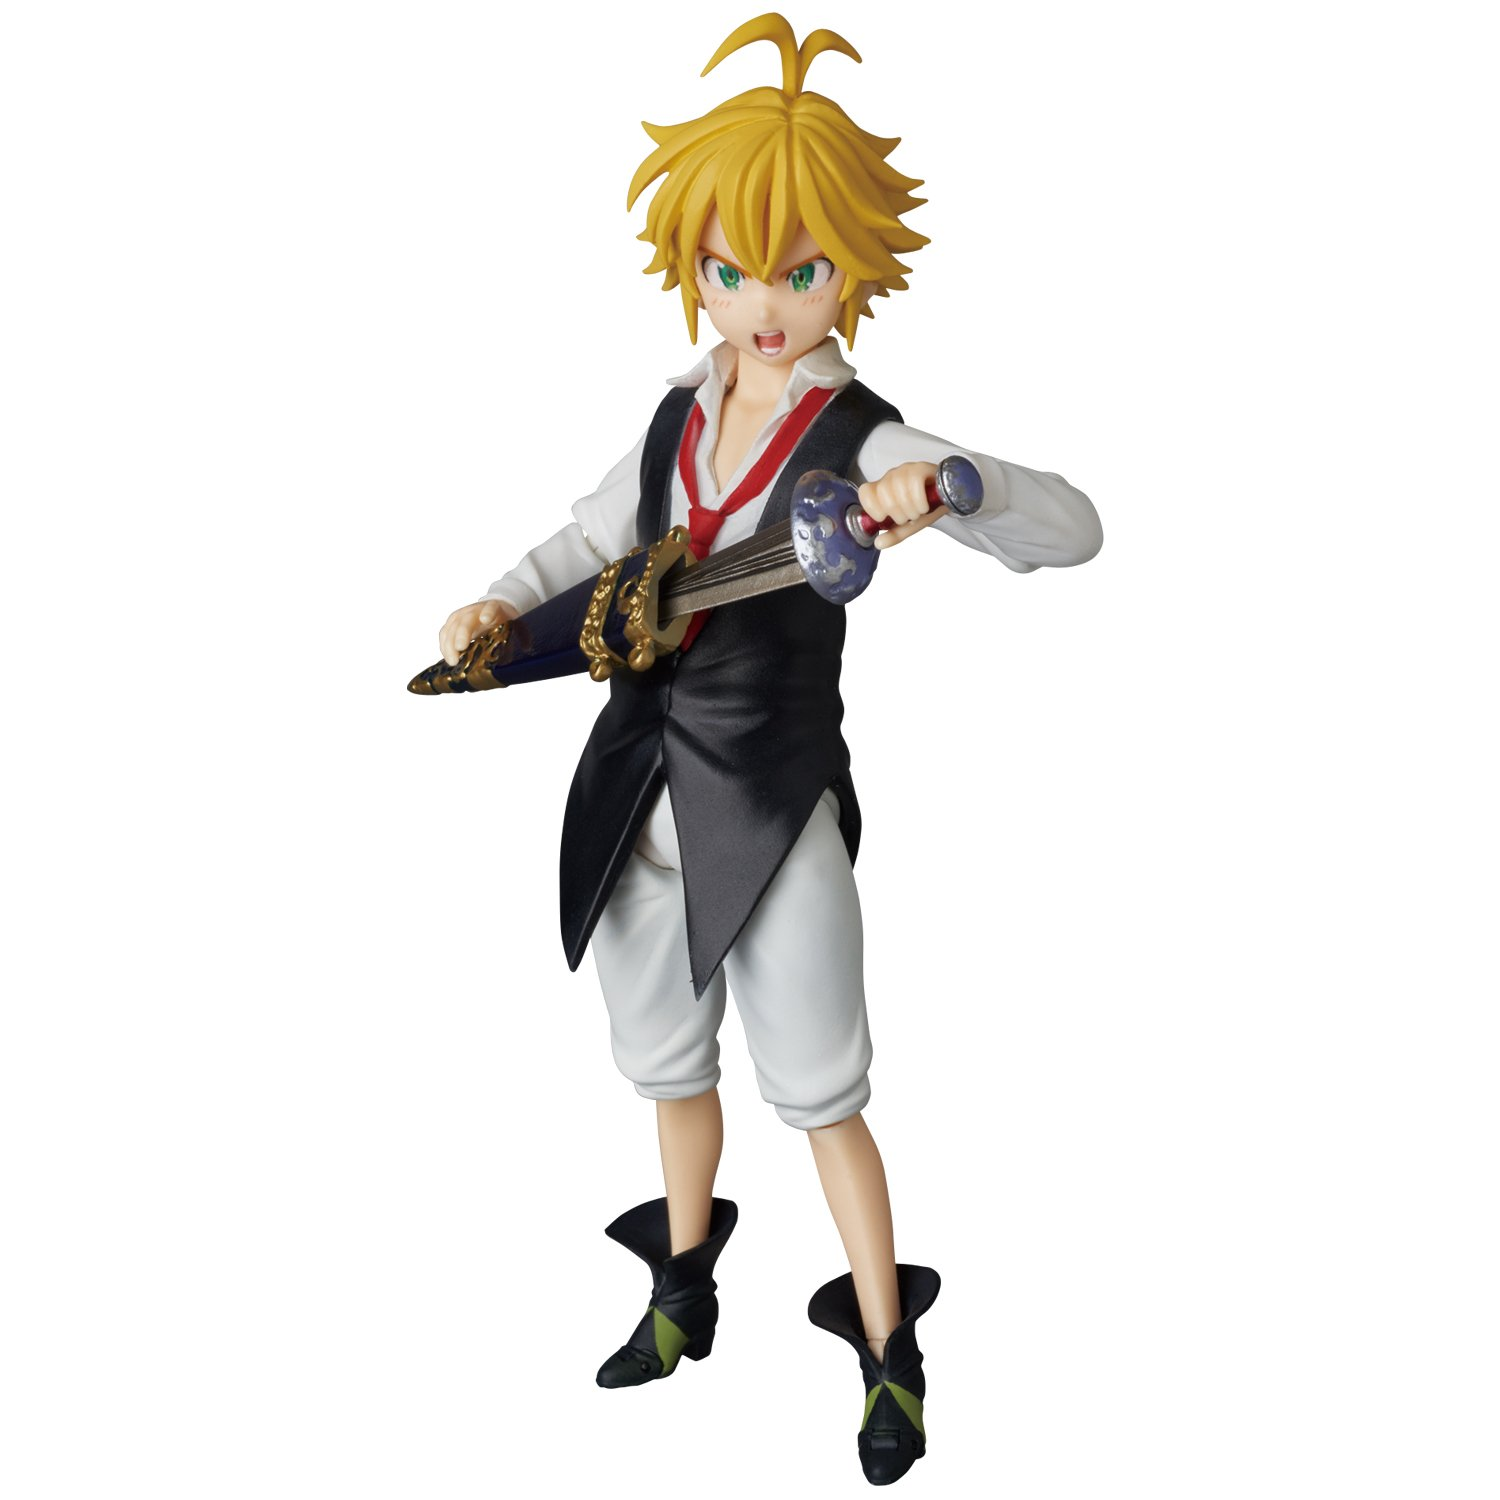 Seven Deadly Sins Anime Figures | www.imgkid.com - The ...